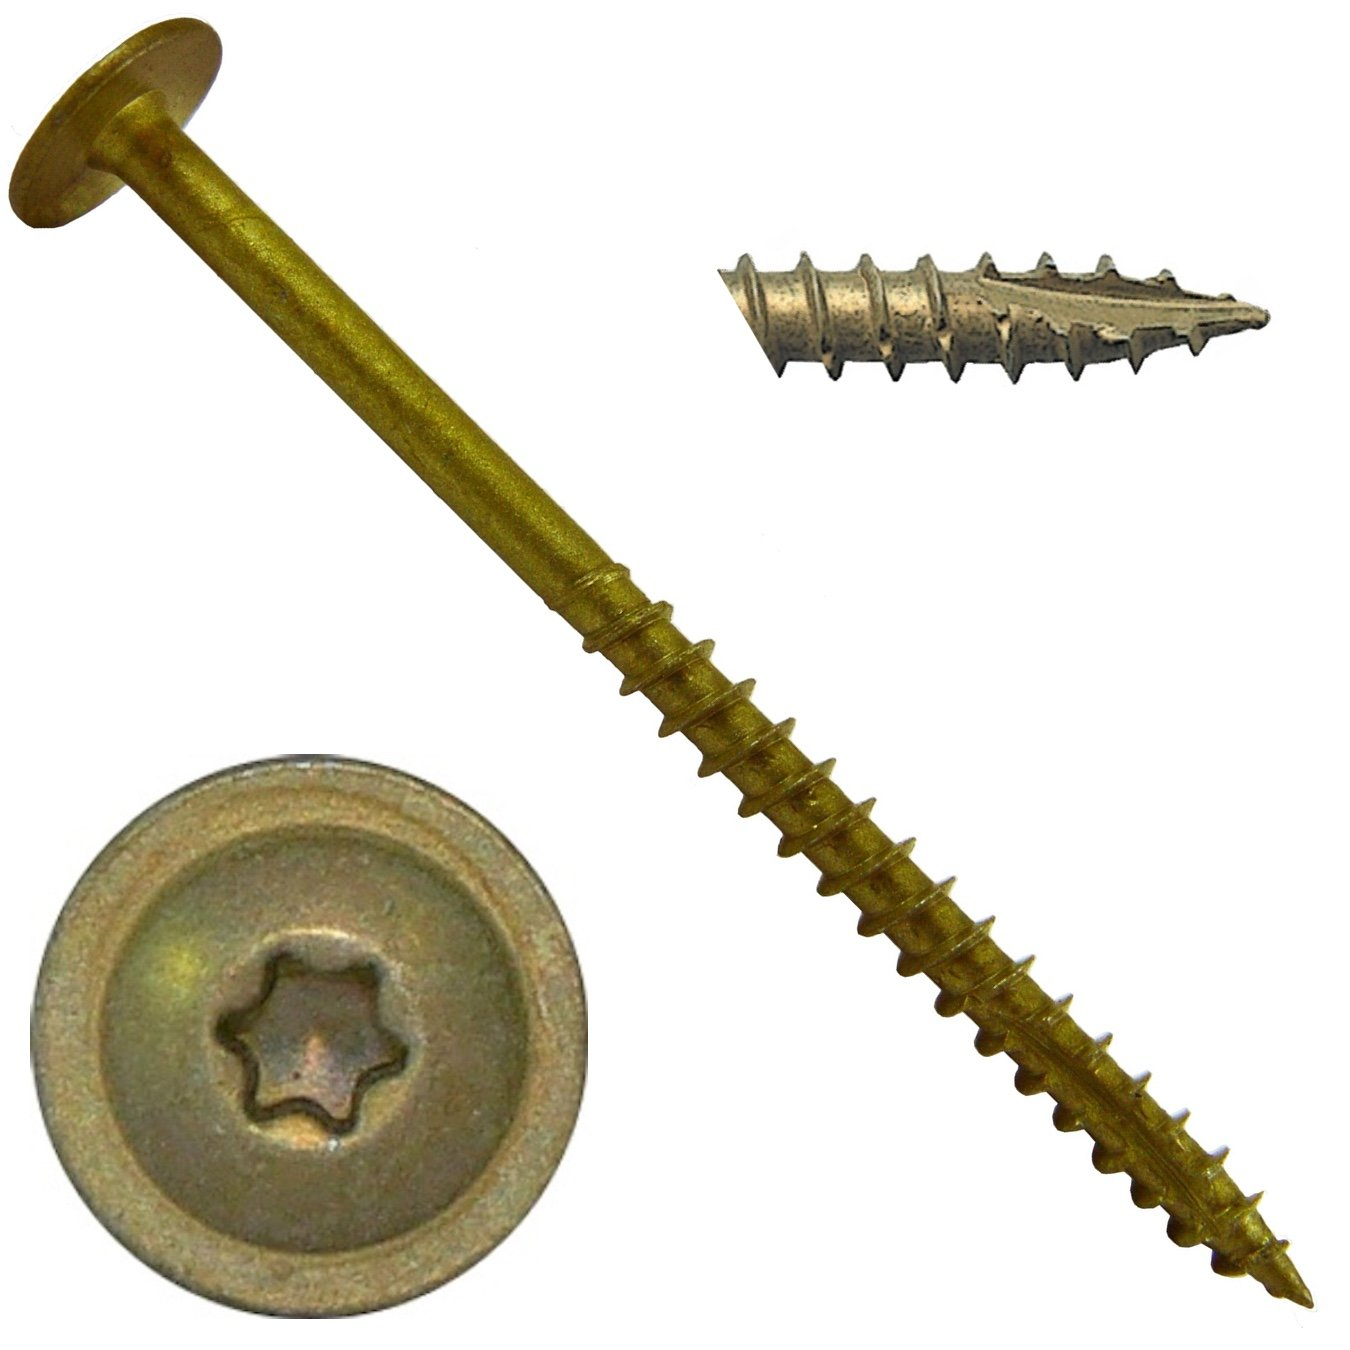 #10 x 3'' Round Washer (Modified Truss) Head Screw Torx/Star Drive Head Wood Screw (1 Pound) Multipurpose Wood Screws for Construction, Cabinets, Furniture & Many Other Wood Screw Applications